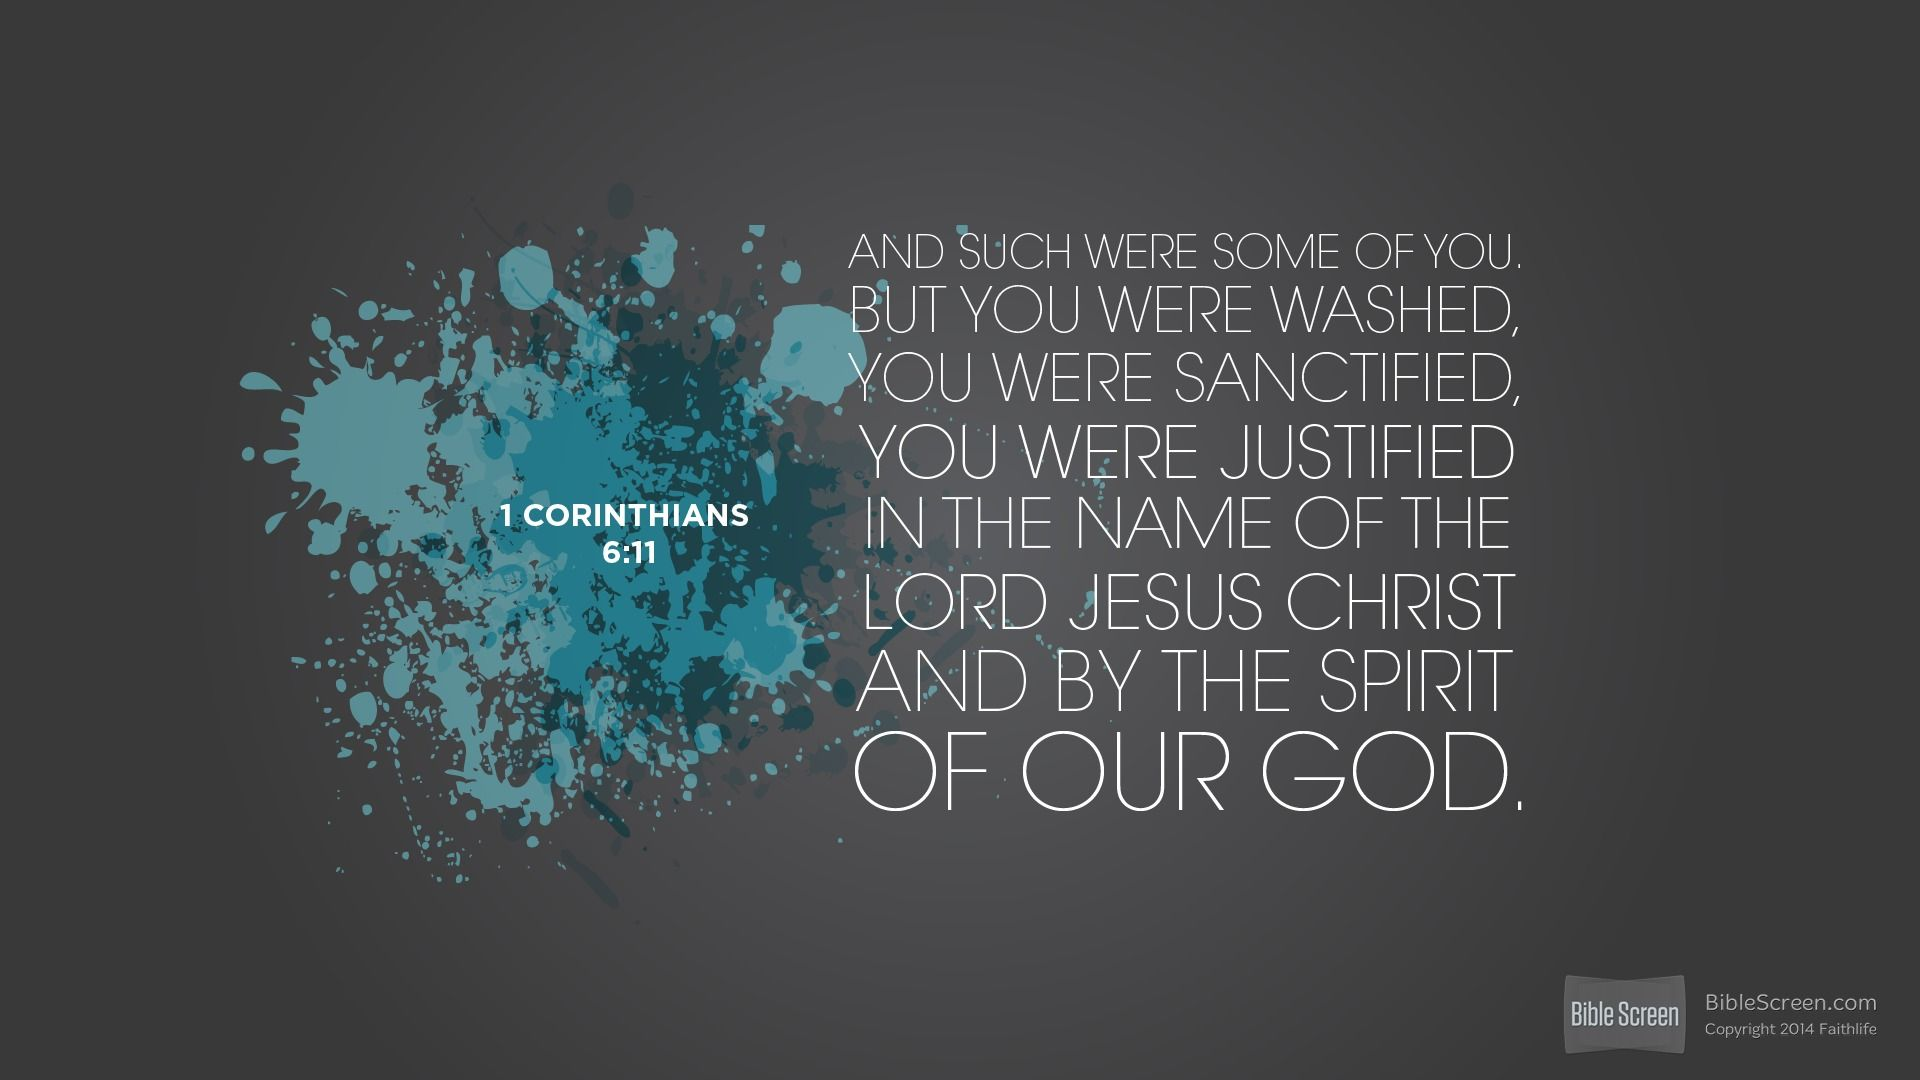 """""""And such were some of you. But you were washed, you were sanctified, you were justified in the name of the Lord Jesus Christ and by the Spirit of our God."""" 1 Corinthians 6:11"""